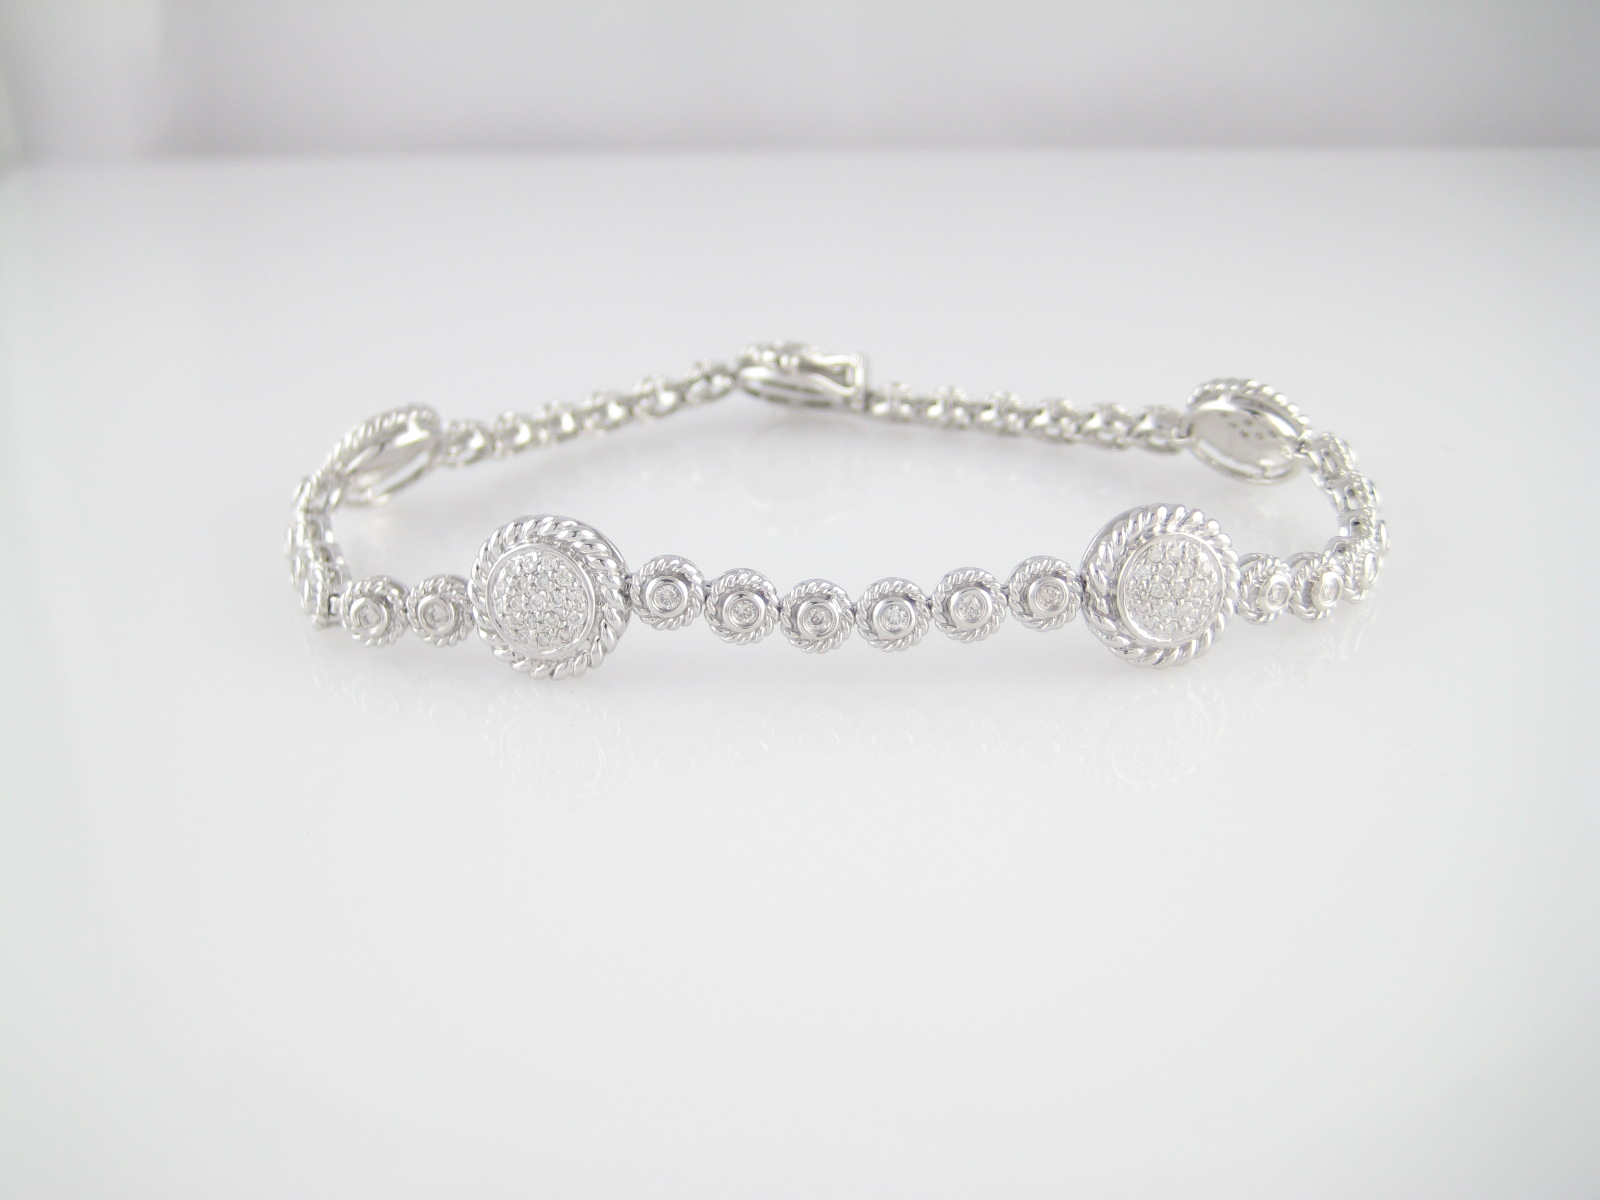 14K Ladies Diamond Bracelet